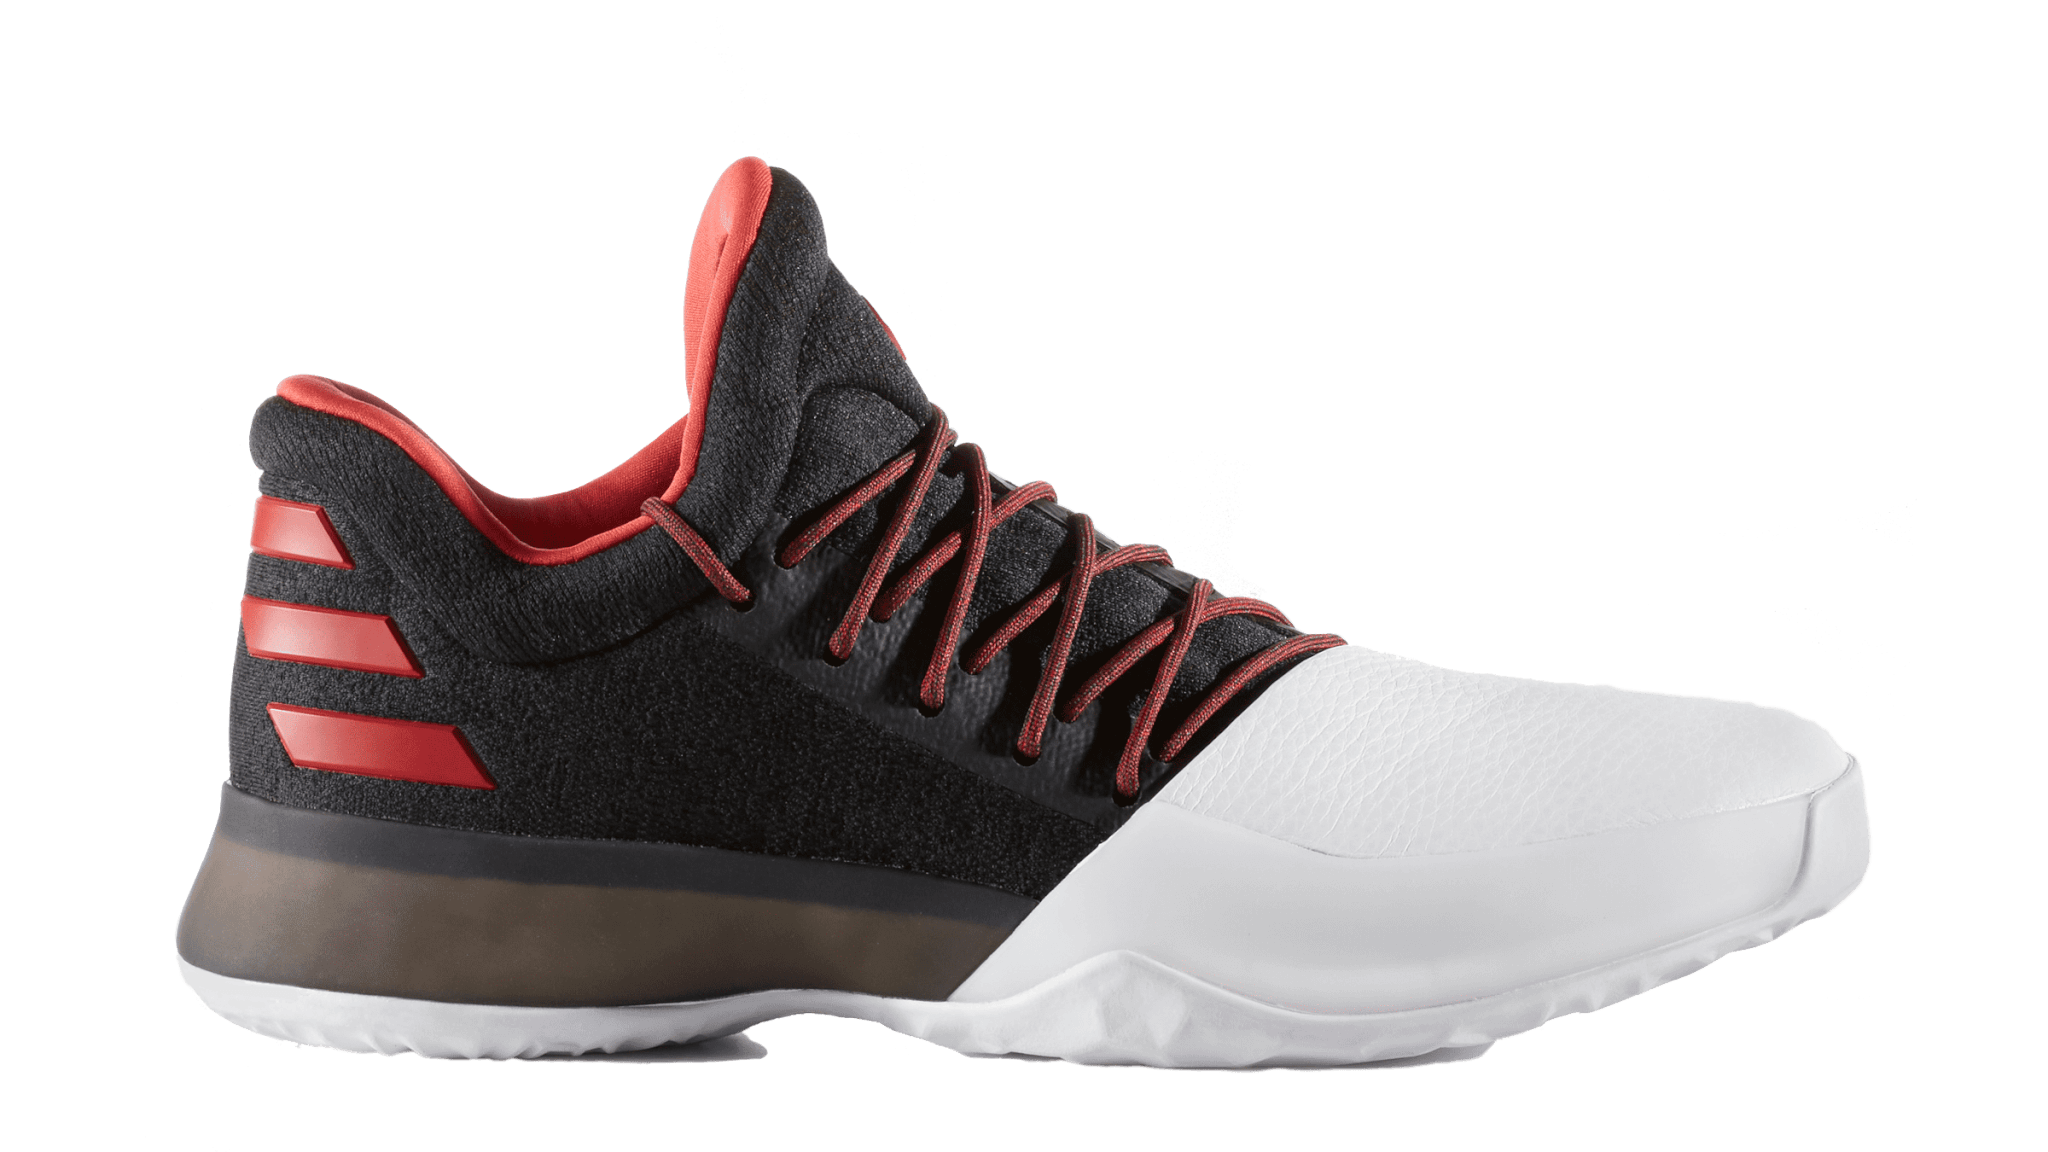 078e143484d76 Adidas Harden Volume 1 Performance Review